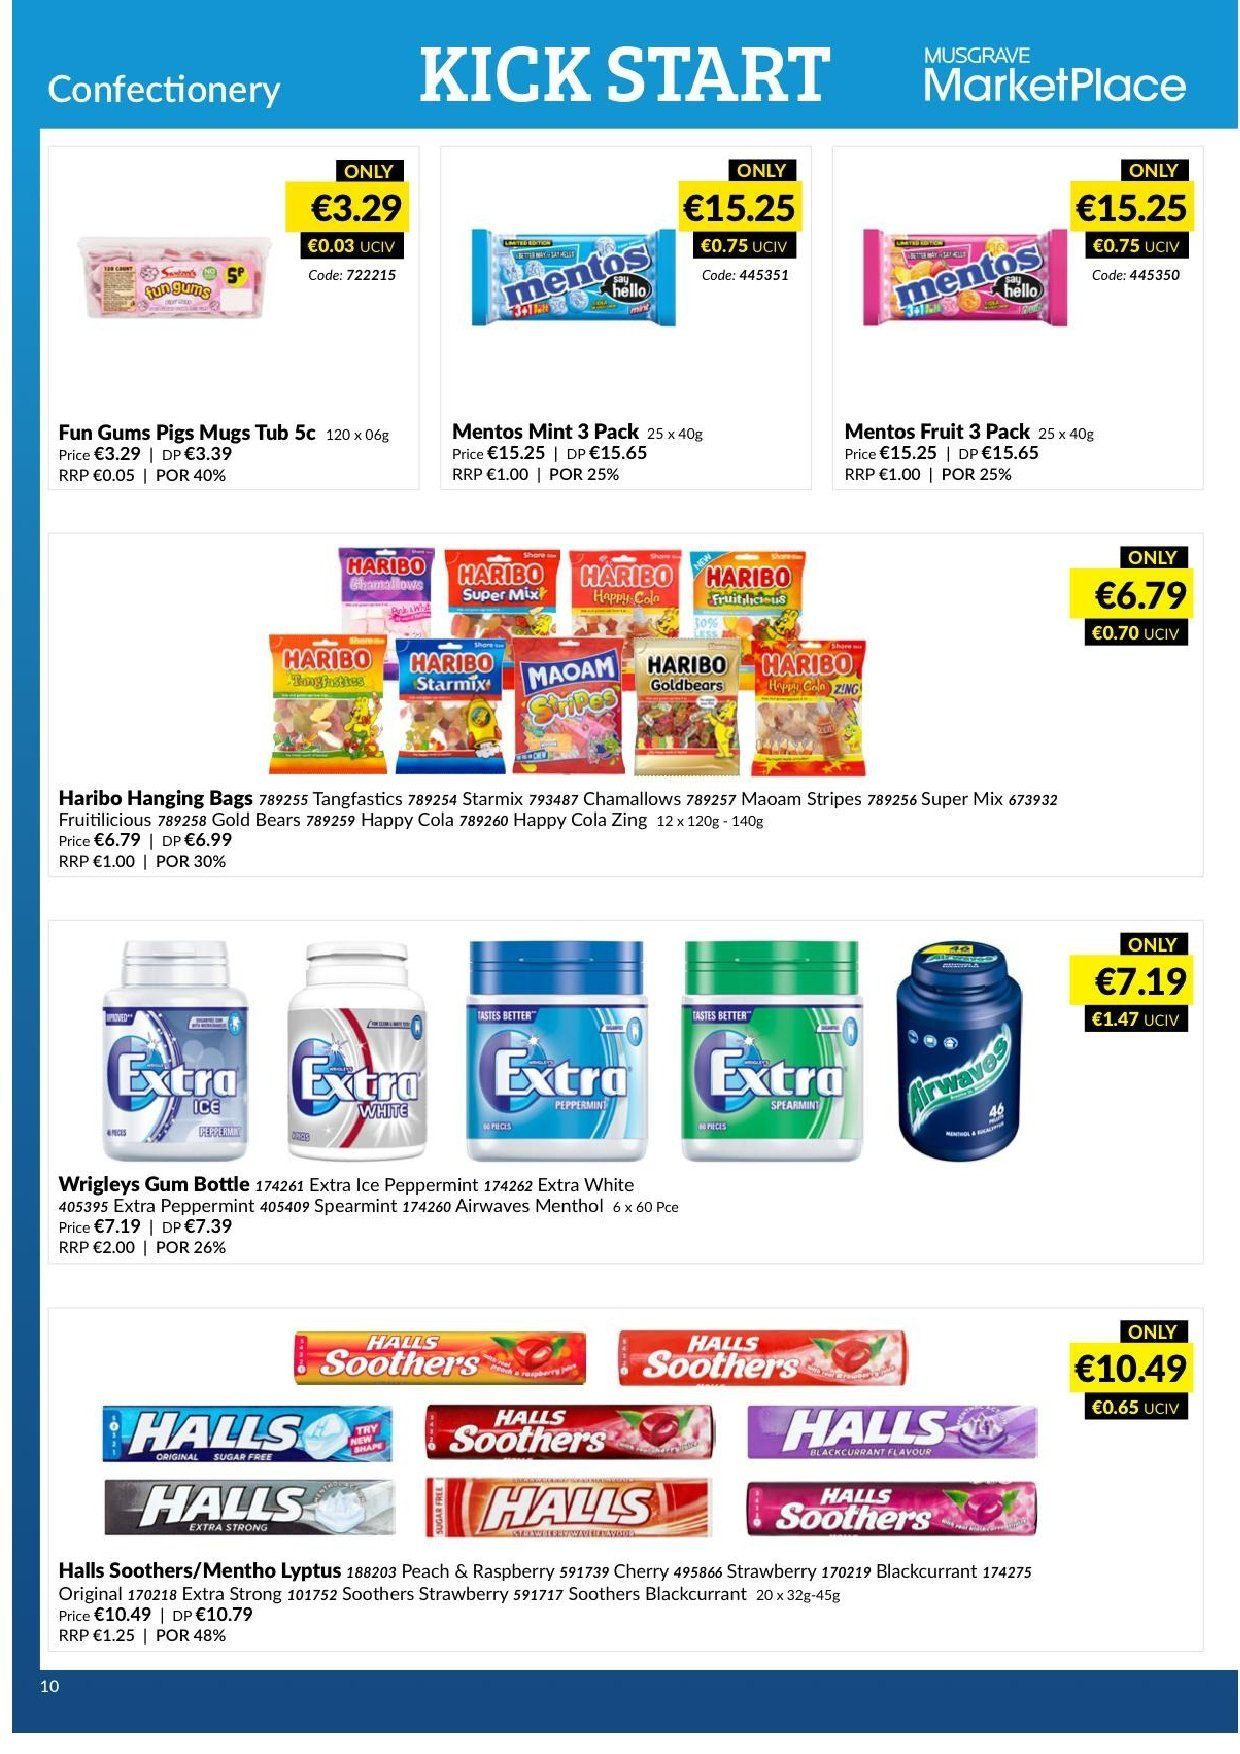 MUSGRAVE Market Place offer  - 17.2.2019 - 16.3.2019 - Sales products - strawberries, Halls, Mentos, Haribo, tub. Page 8.